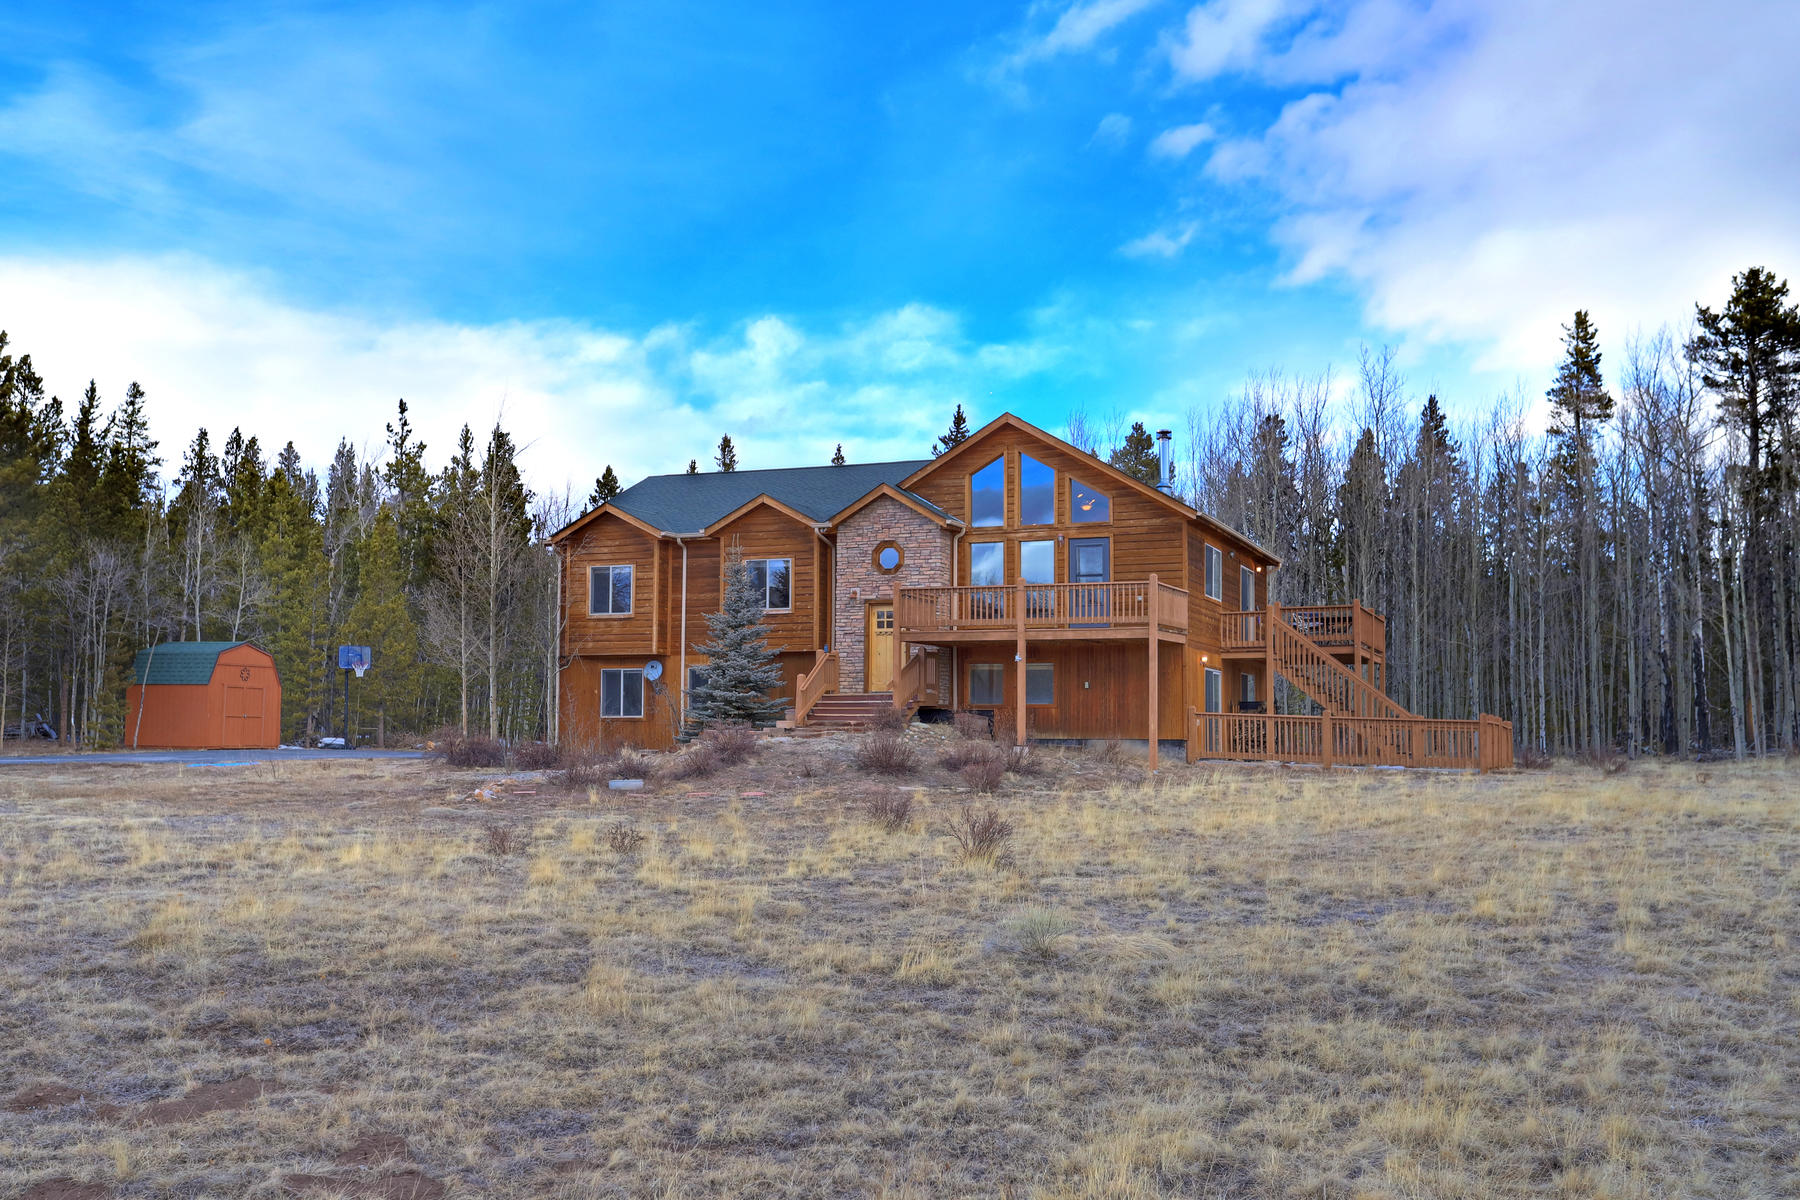 Single Family Home for Active at Canon Court 256 Cannon Court Fairplay, Colorado 80440 United States